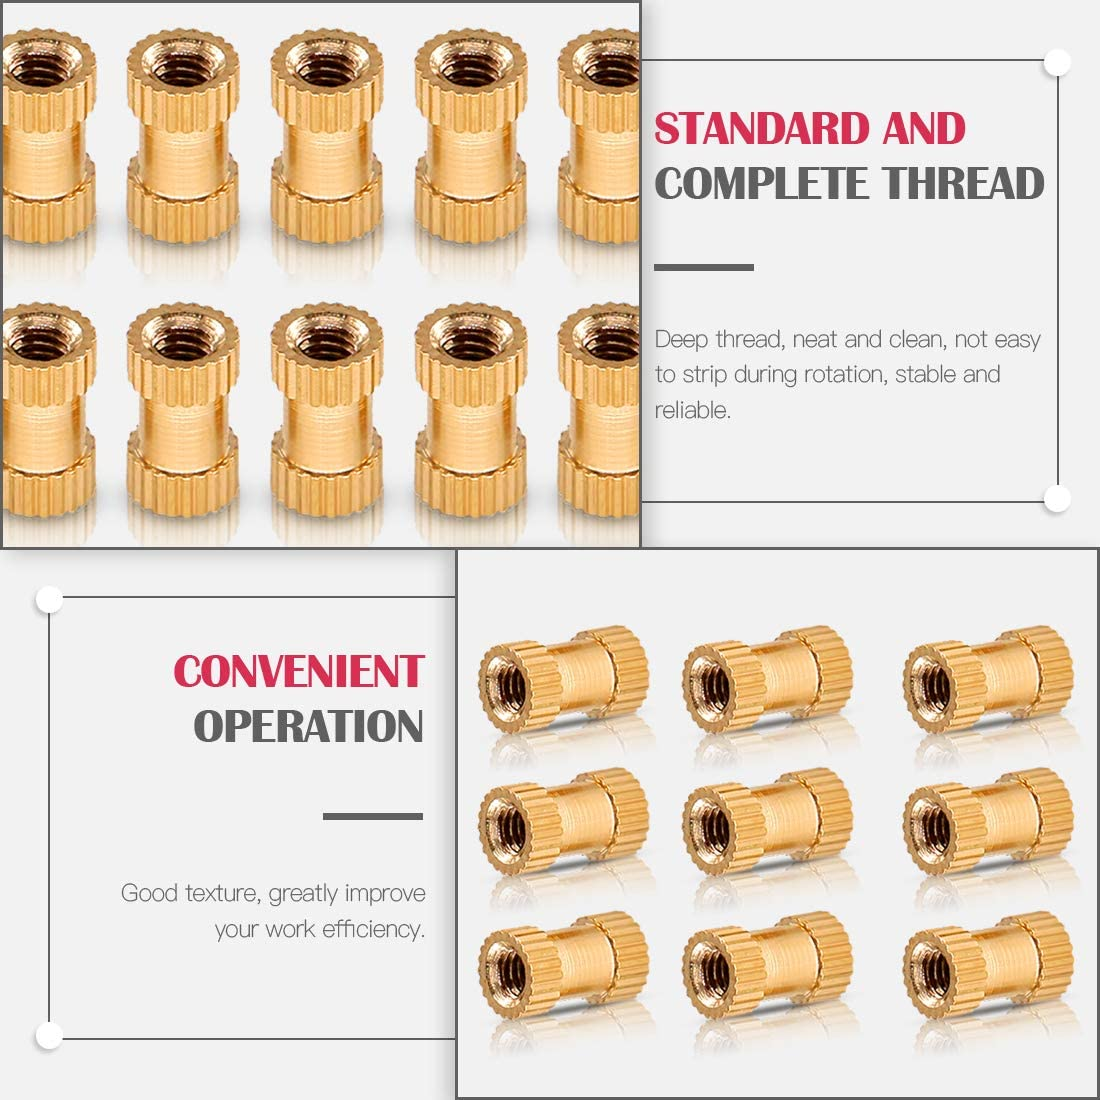 Pressed Fit into Holes for 3D Prints and More Projects Hilitchi 460 Pcs M2 M3 M4 M5 Female Thread Brass Knurled Threaded Insert Embedment Nuts Assortment Kit Embed Parts